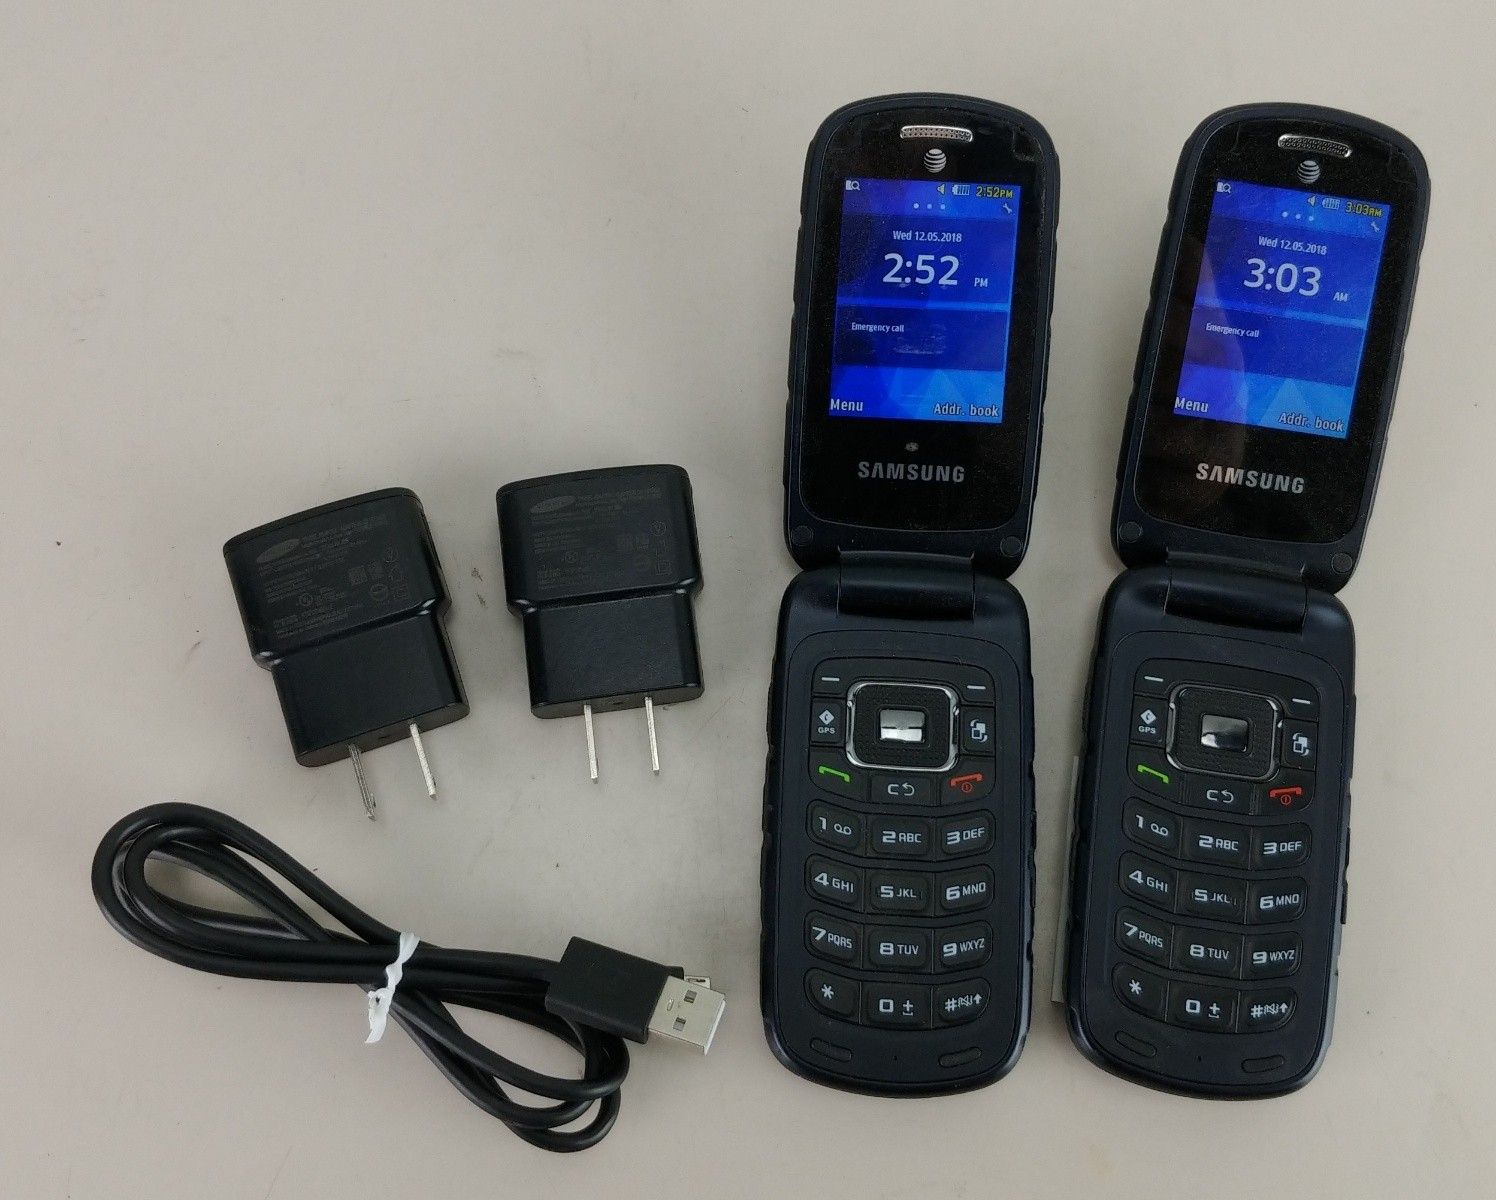 2 Samsung Rugby 4 SM-B780A Flip Cell Phone AT&T Used